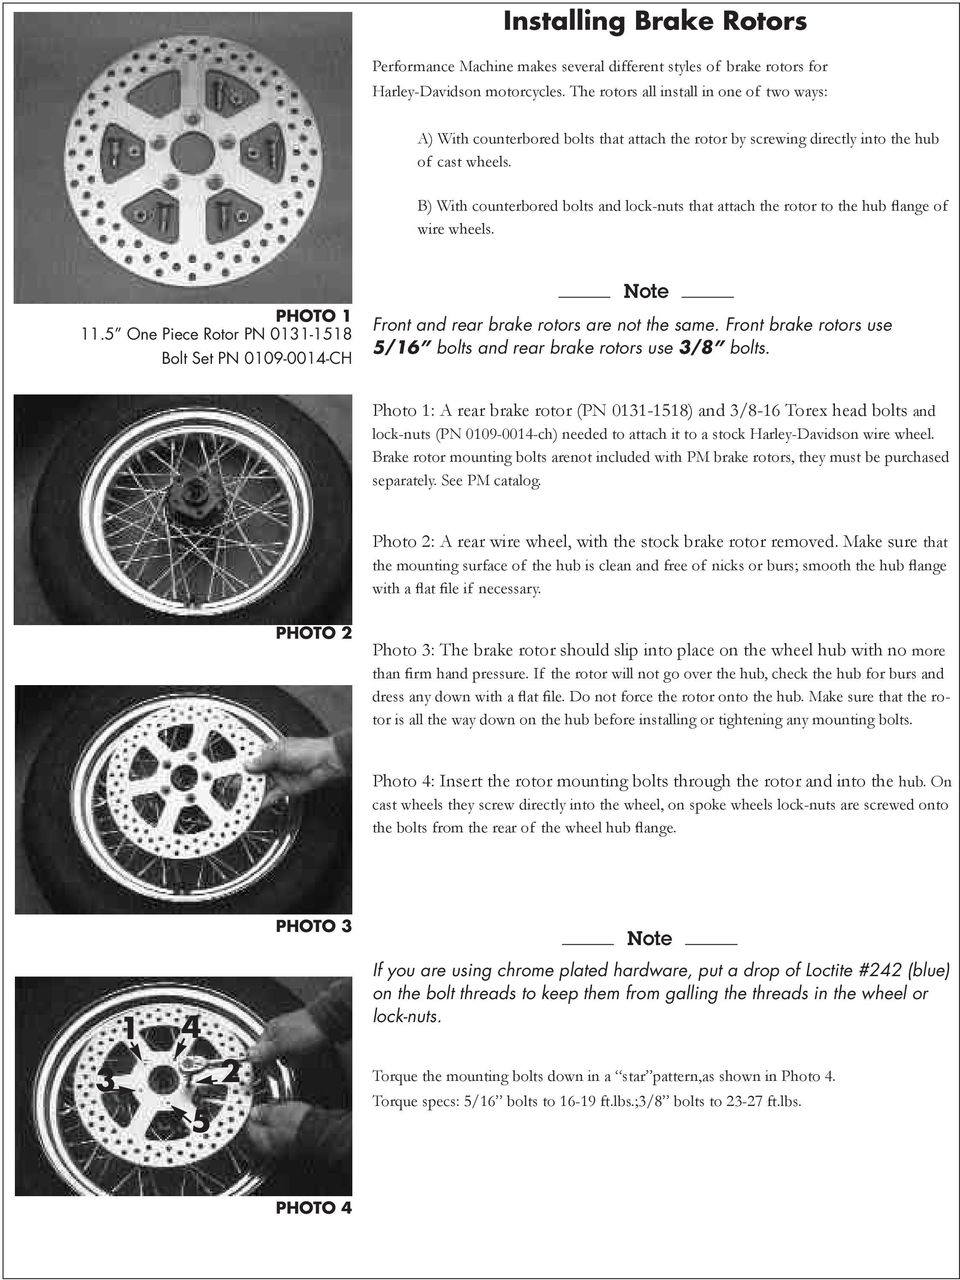 4 Piston Brake Calipers And Rotors Pdf Caption Diagram Of The Basic Front Disc Setup Arotor B With Counterbored Bolts Lock Nuts That Attach Rotor To Hub